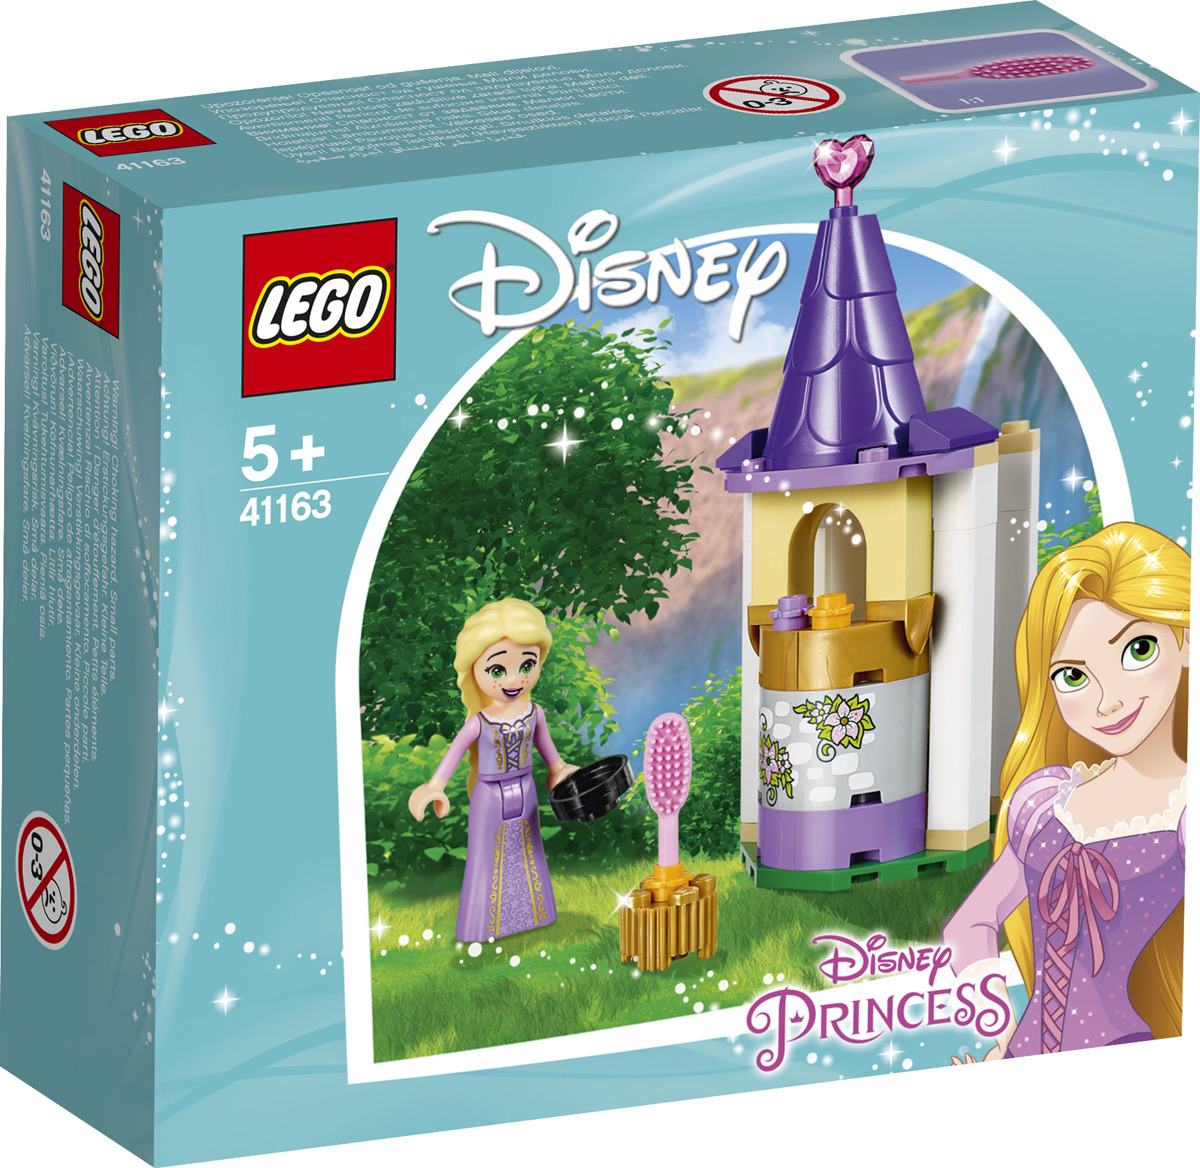 LEGO Disney Princess 41163 Башенка Рапунцель Конструктор конструктор lego disney princess башенка рапунцель 44 дет 41163